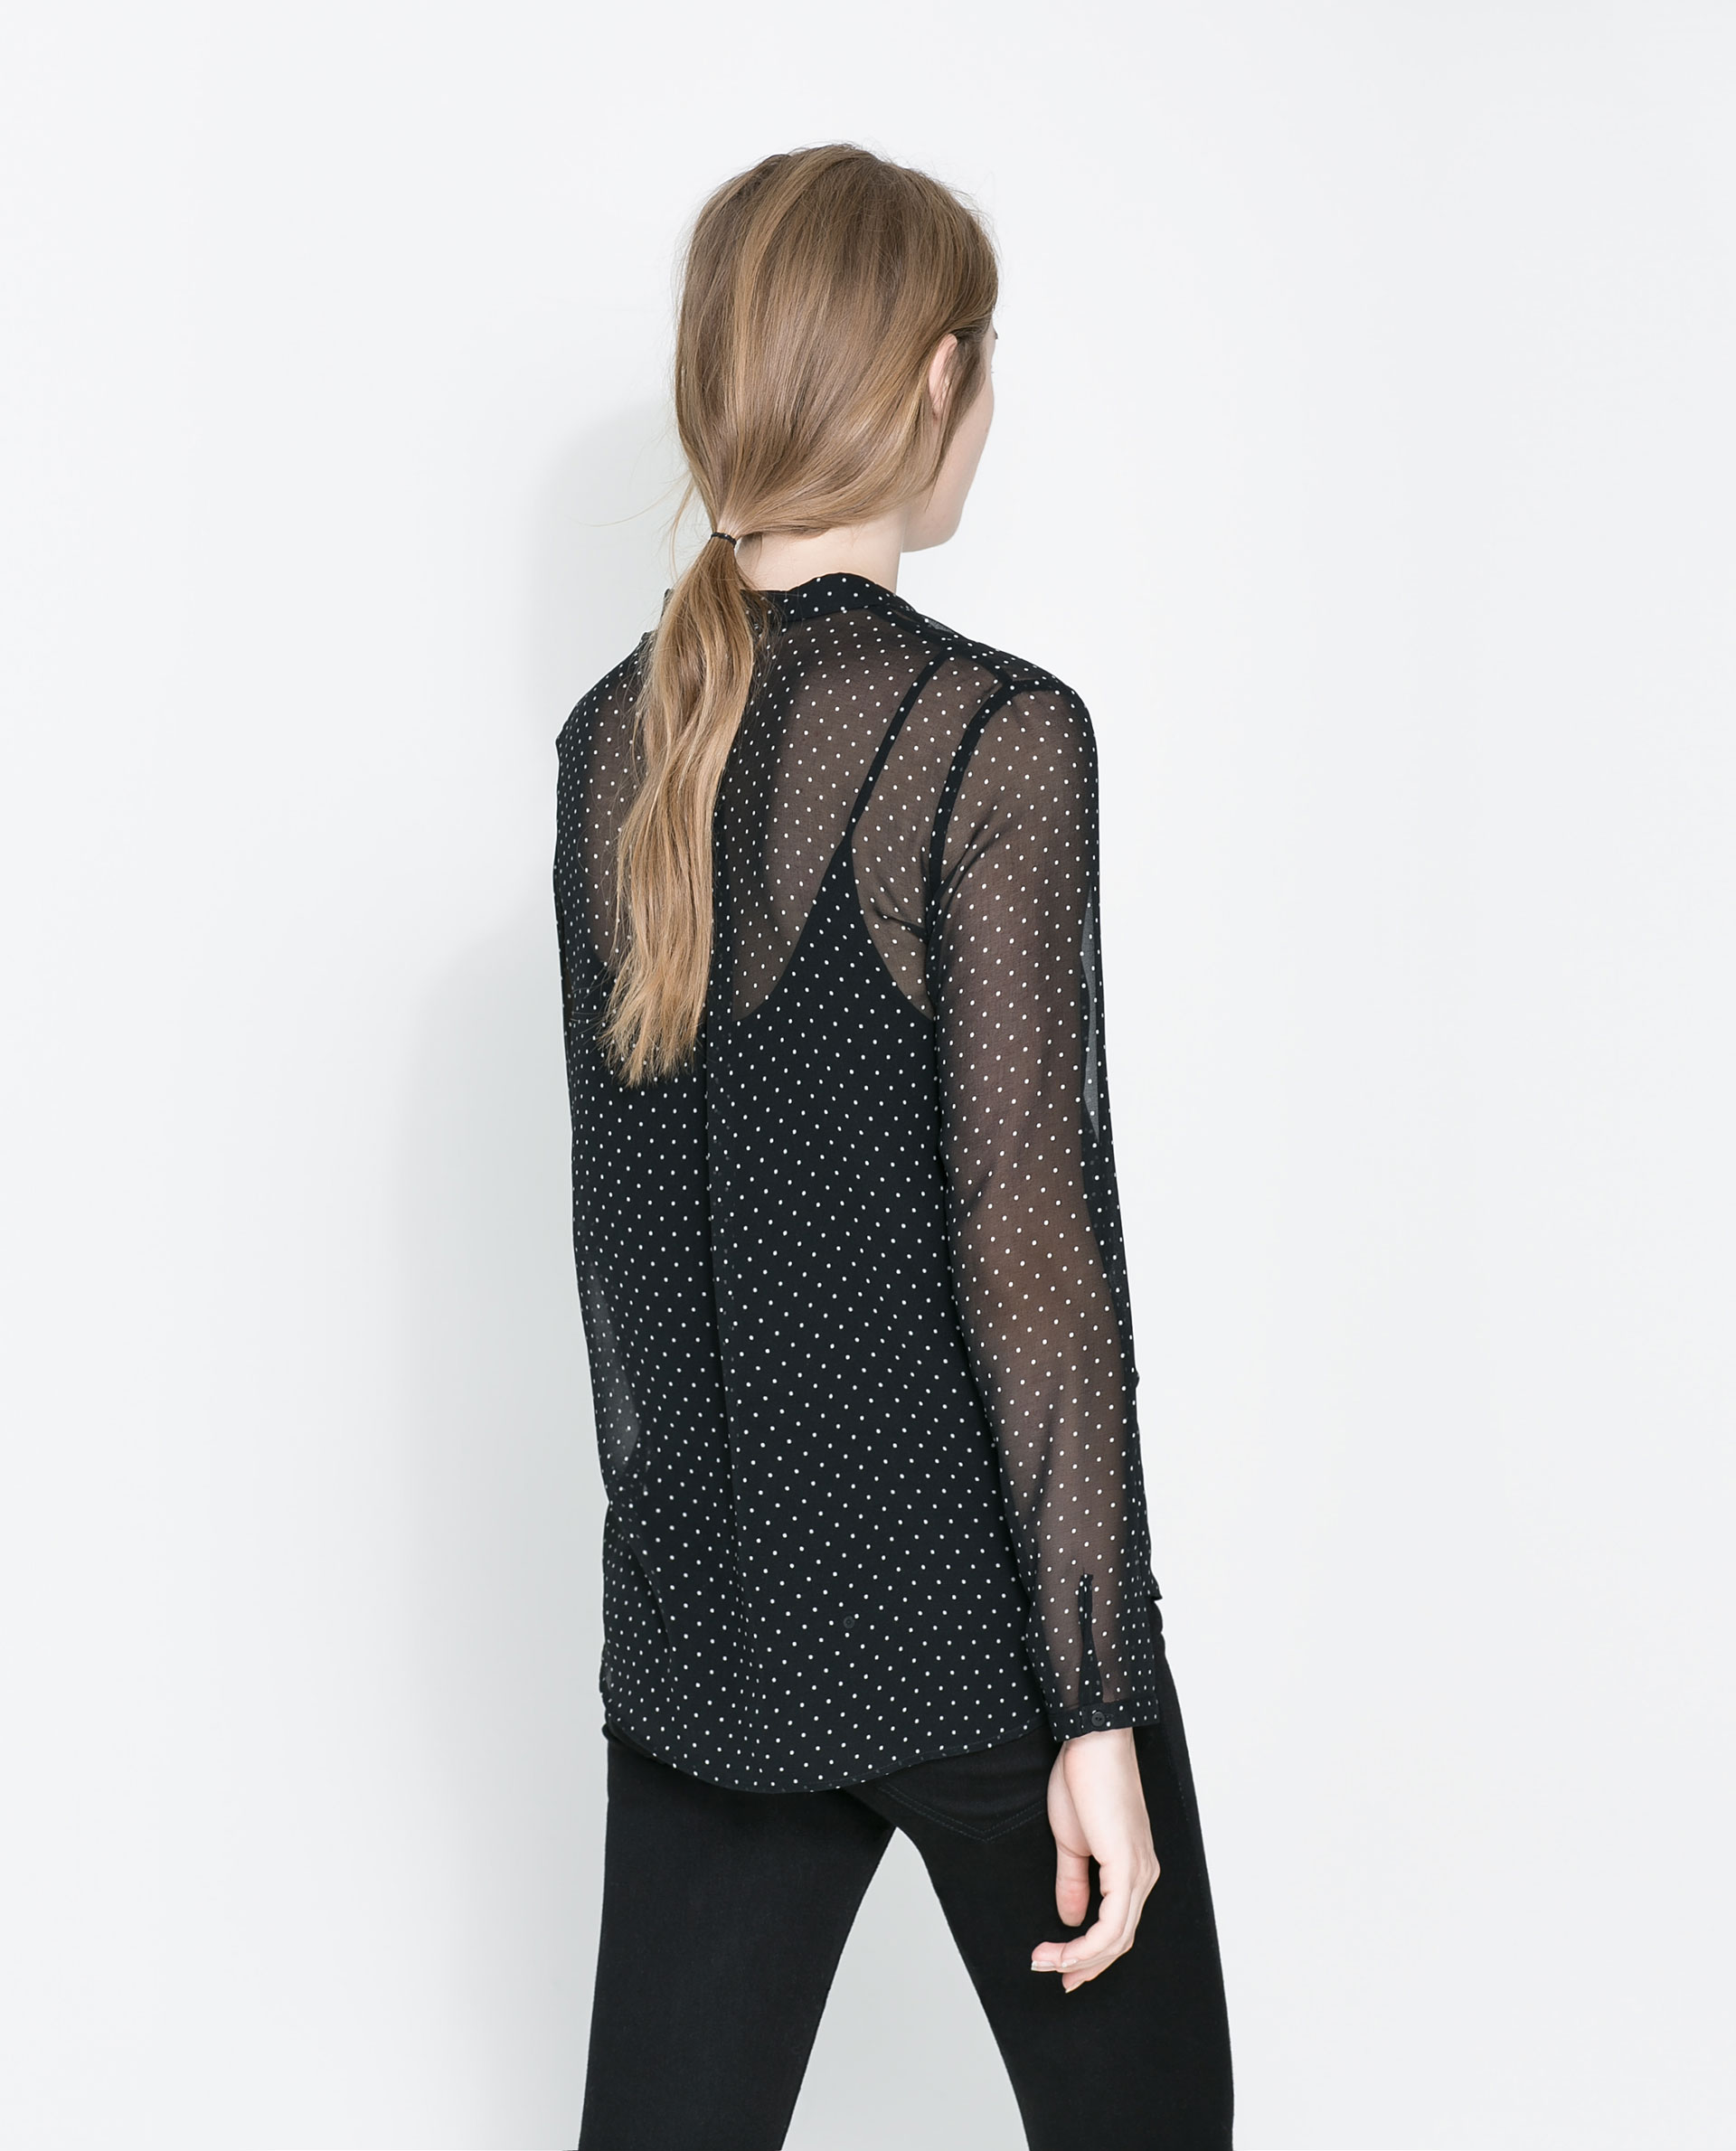 Zara Sheer Black Blouse 68